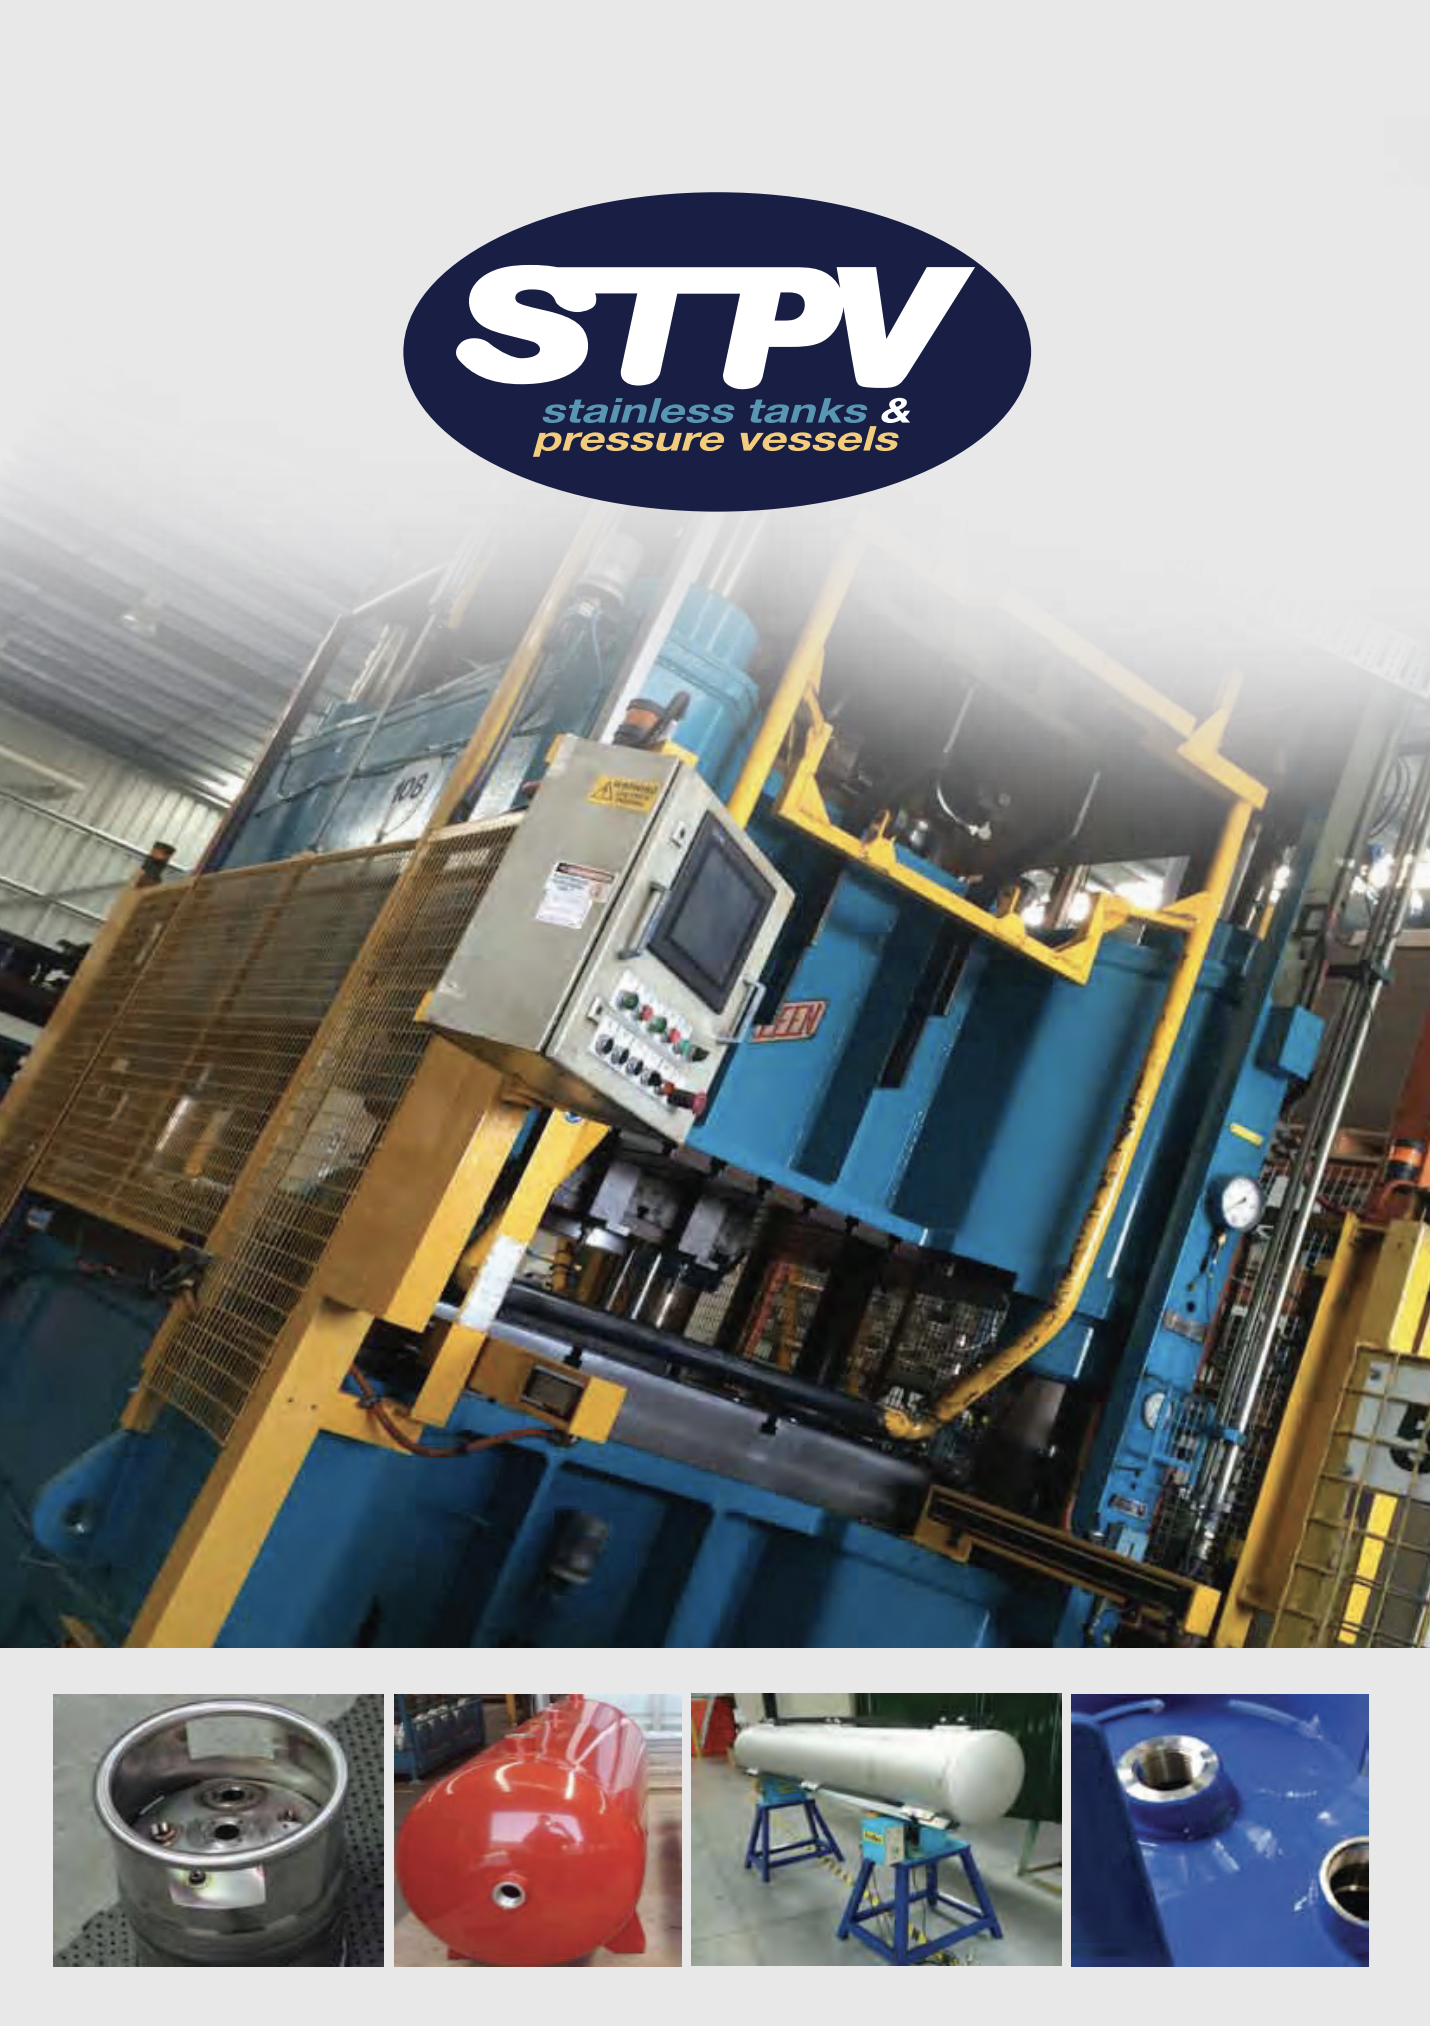 STPV Brochure Cover Page